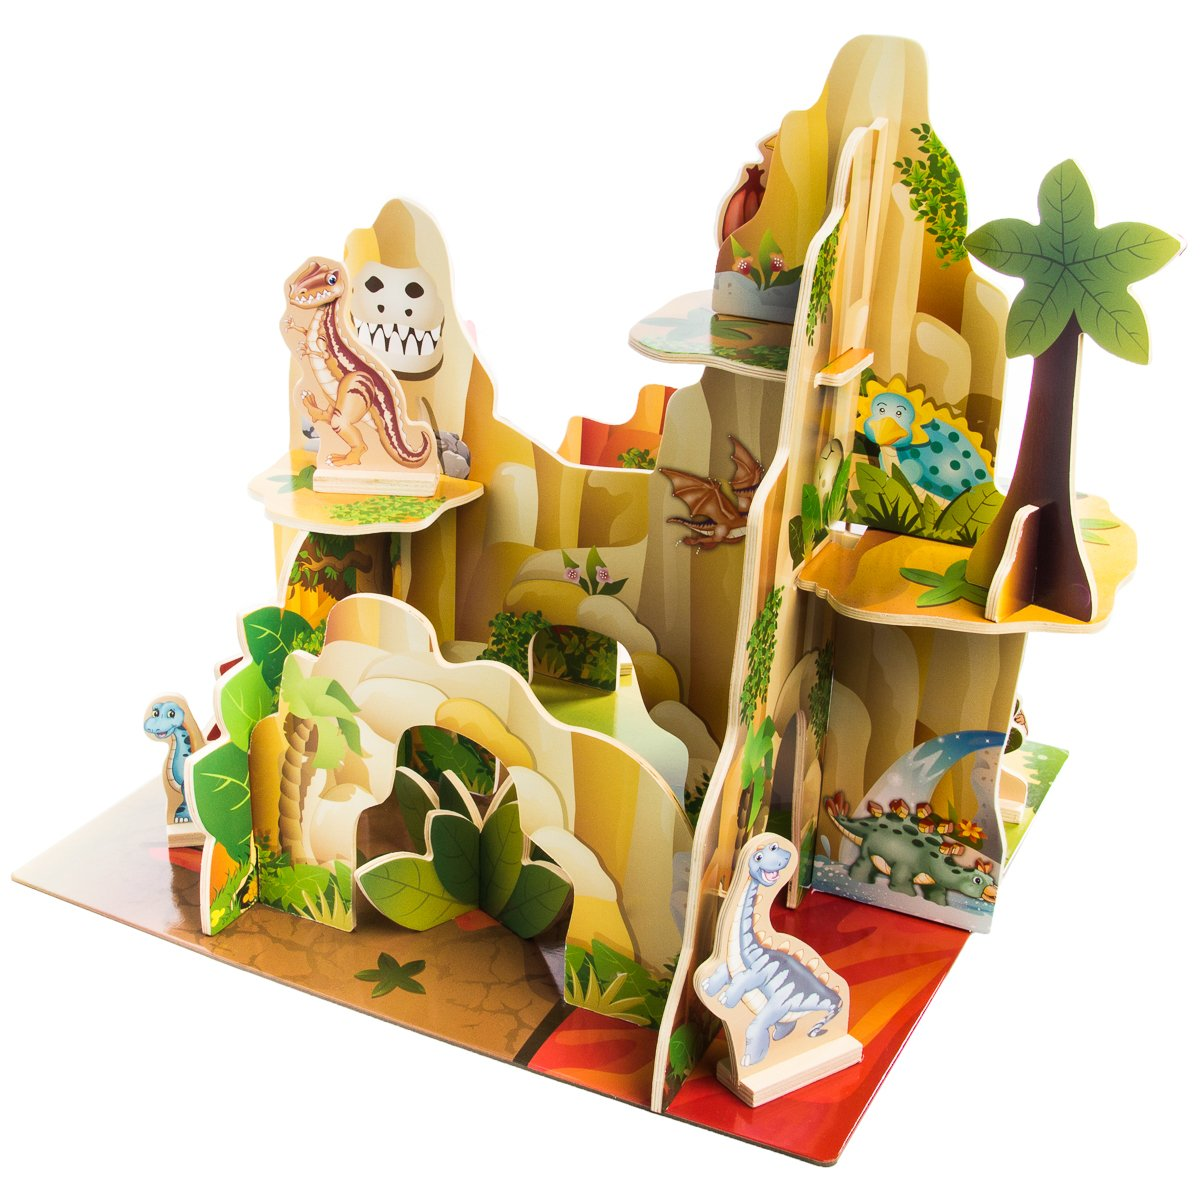 BBI Kids Indoor Multi Level 4 Sided Wooden Adventure Dinosaur Playset Toy Figures for Children .